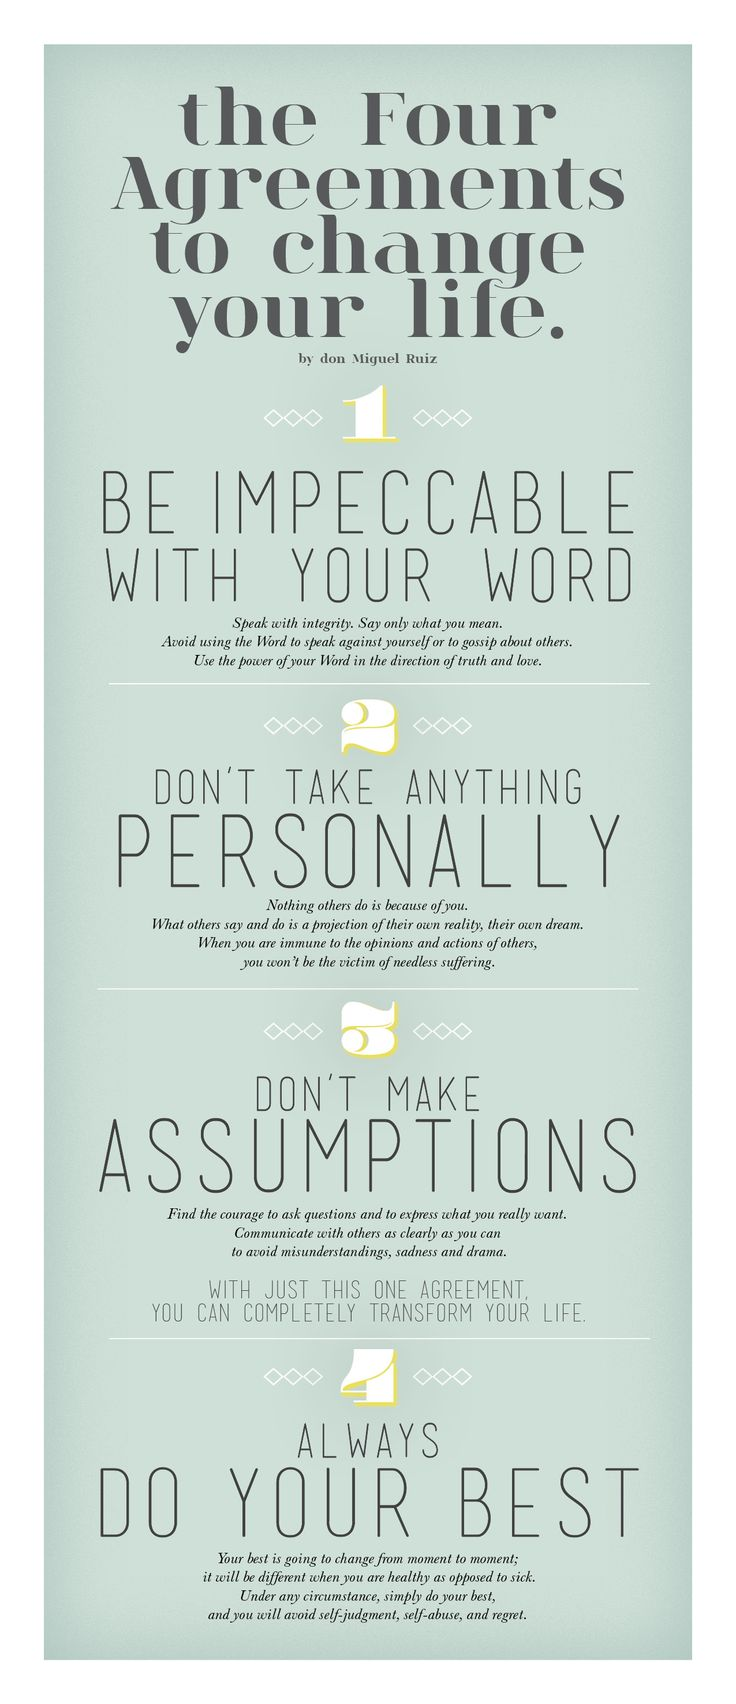 The Four Agreements http://www.goodreads.com/work/quotes/376130-the-four-agreements-a-practical-guide-to-personal-freedom-a-toltec-wis